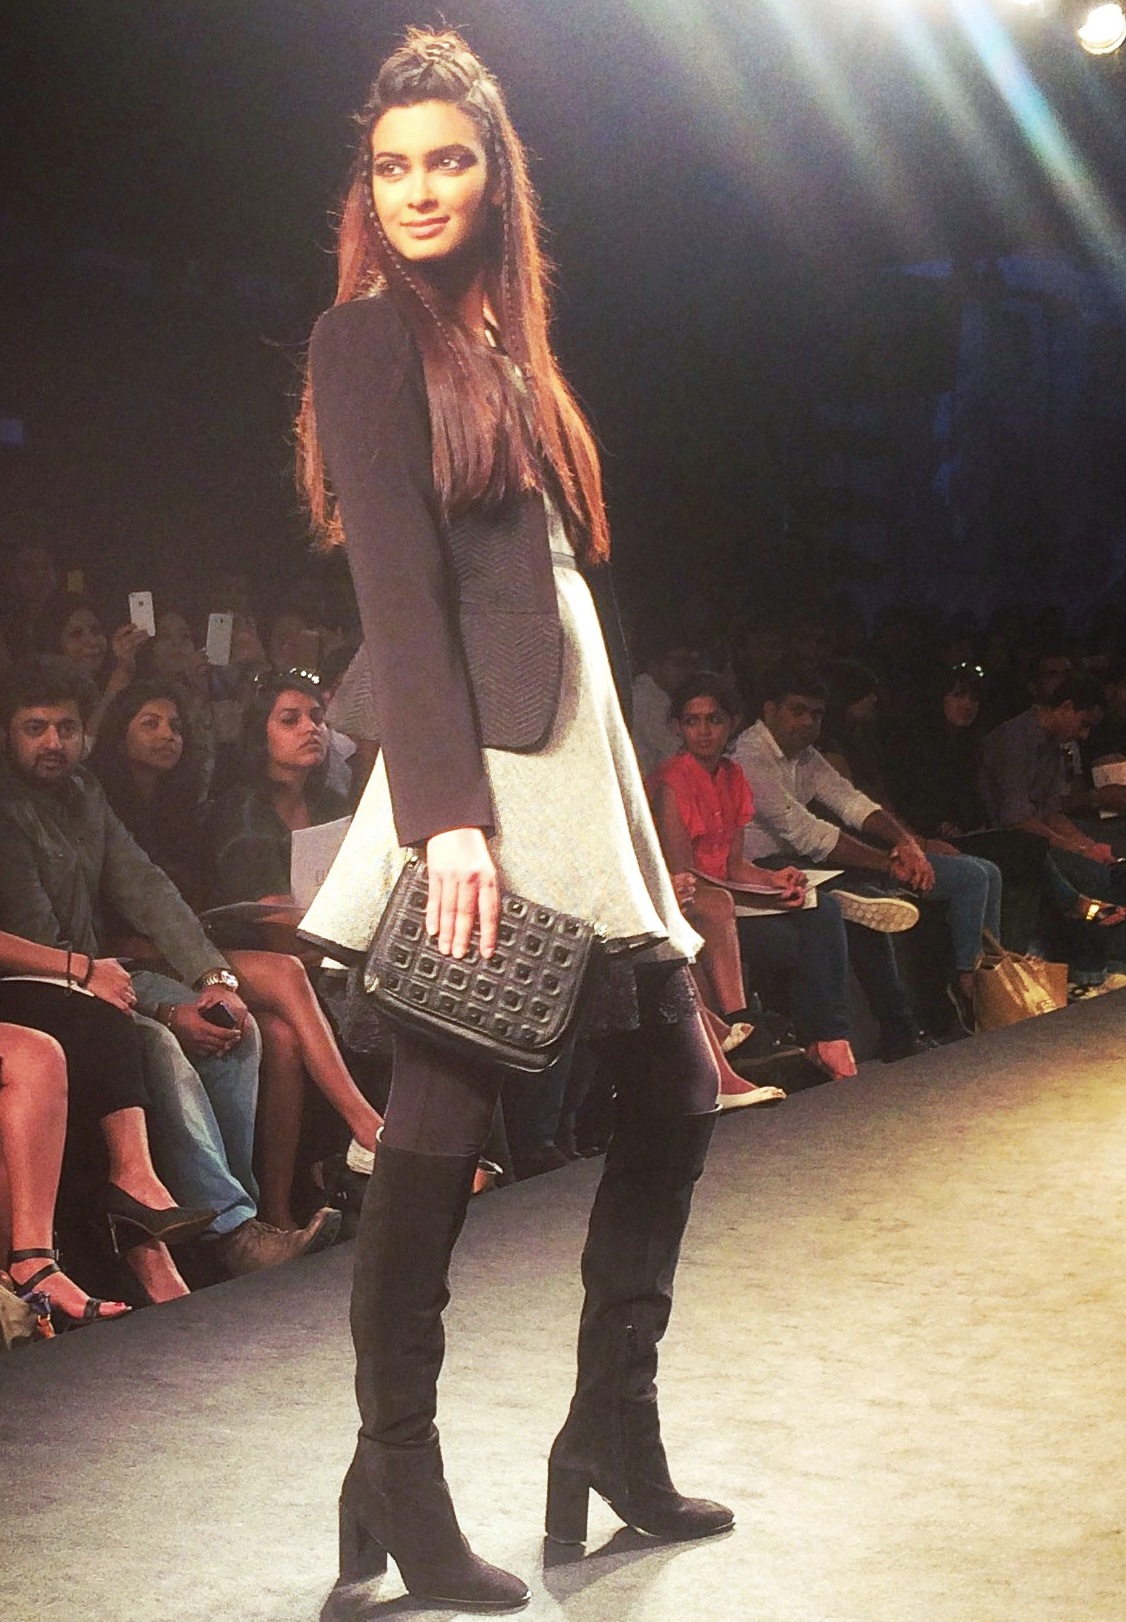 Diana Penty for ELLE French fashion #MFWKND